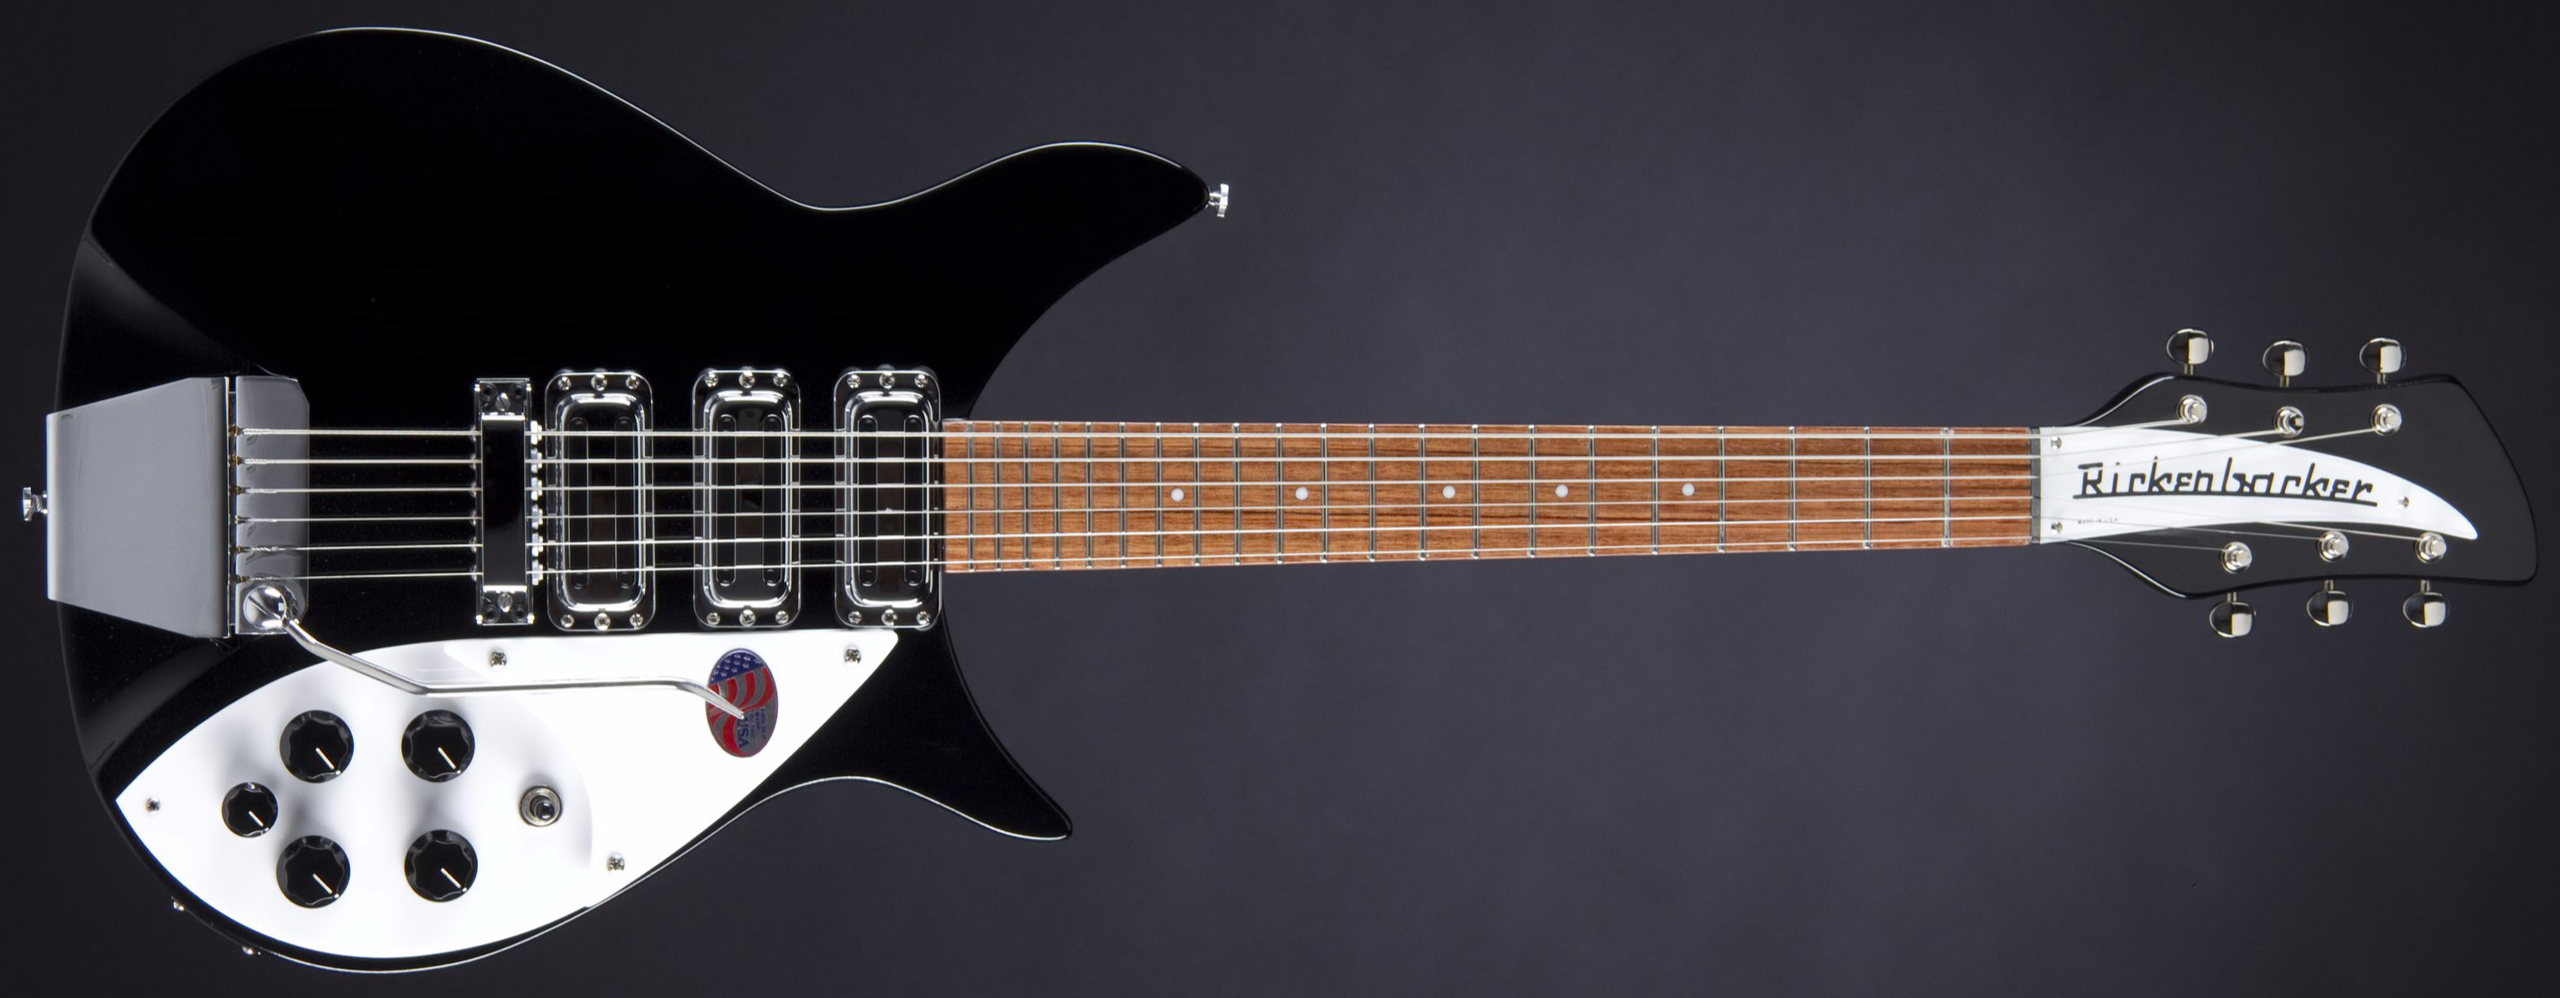 RICKENBACKER Model 325C64 Jetglo